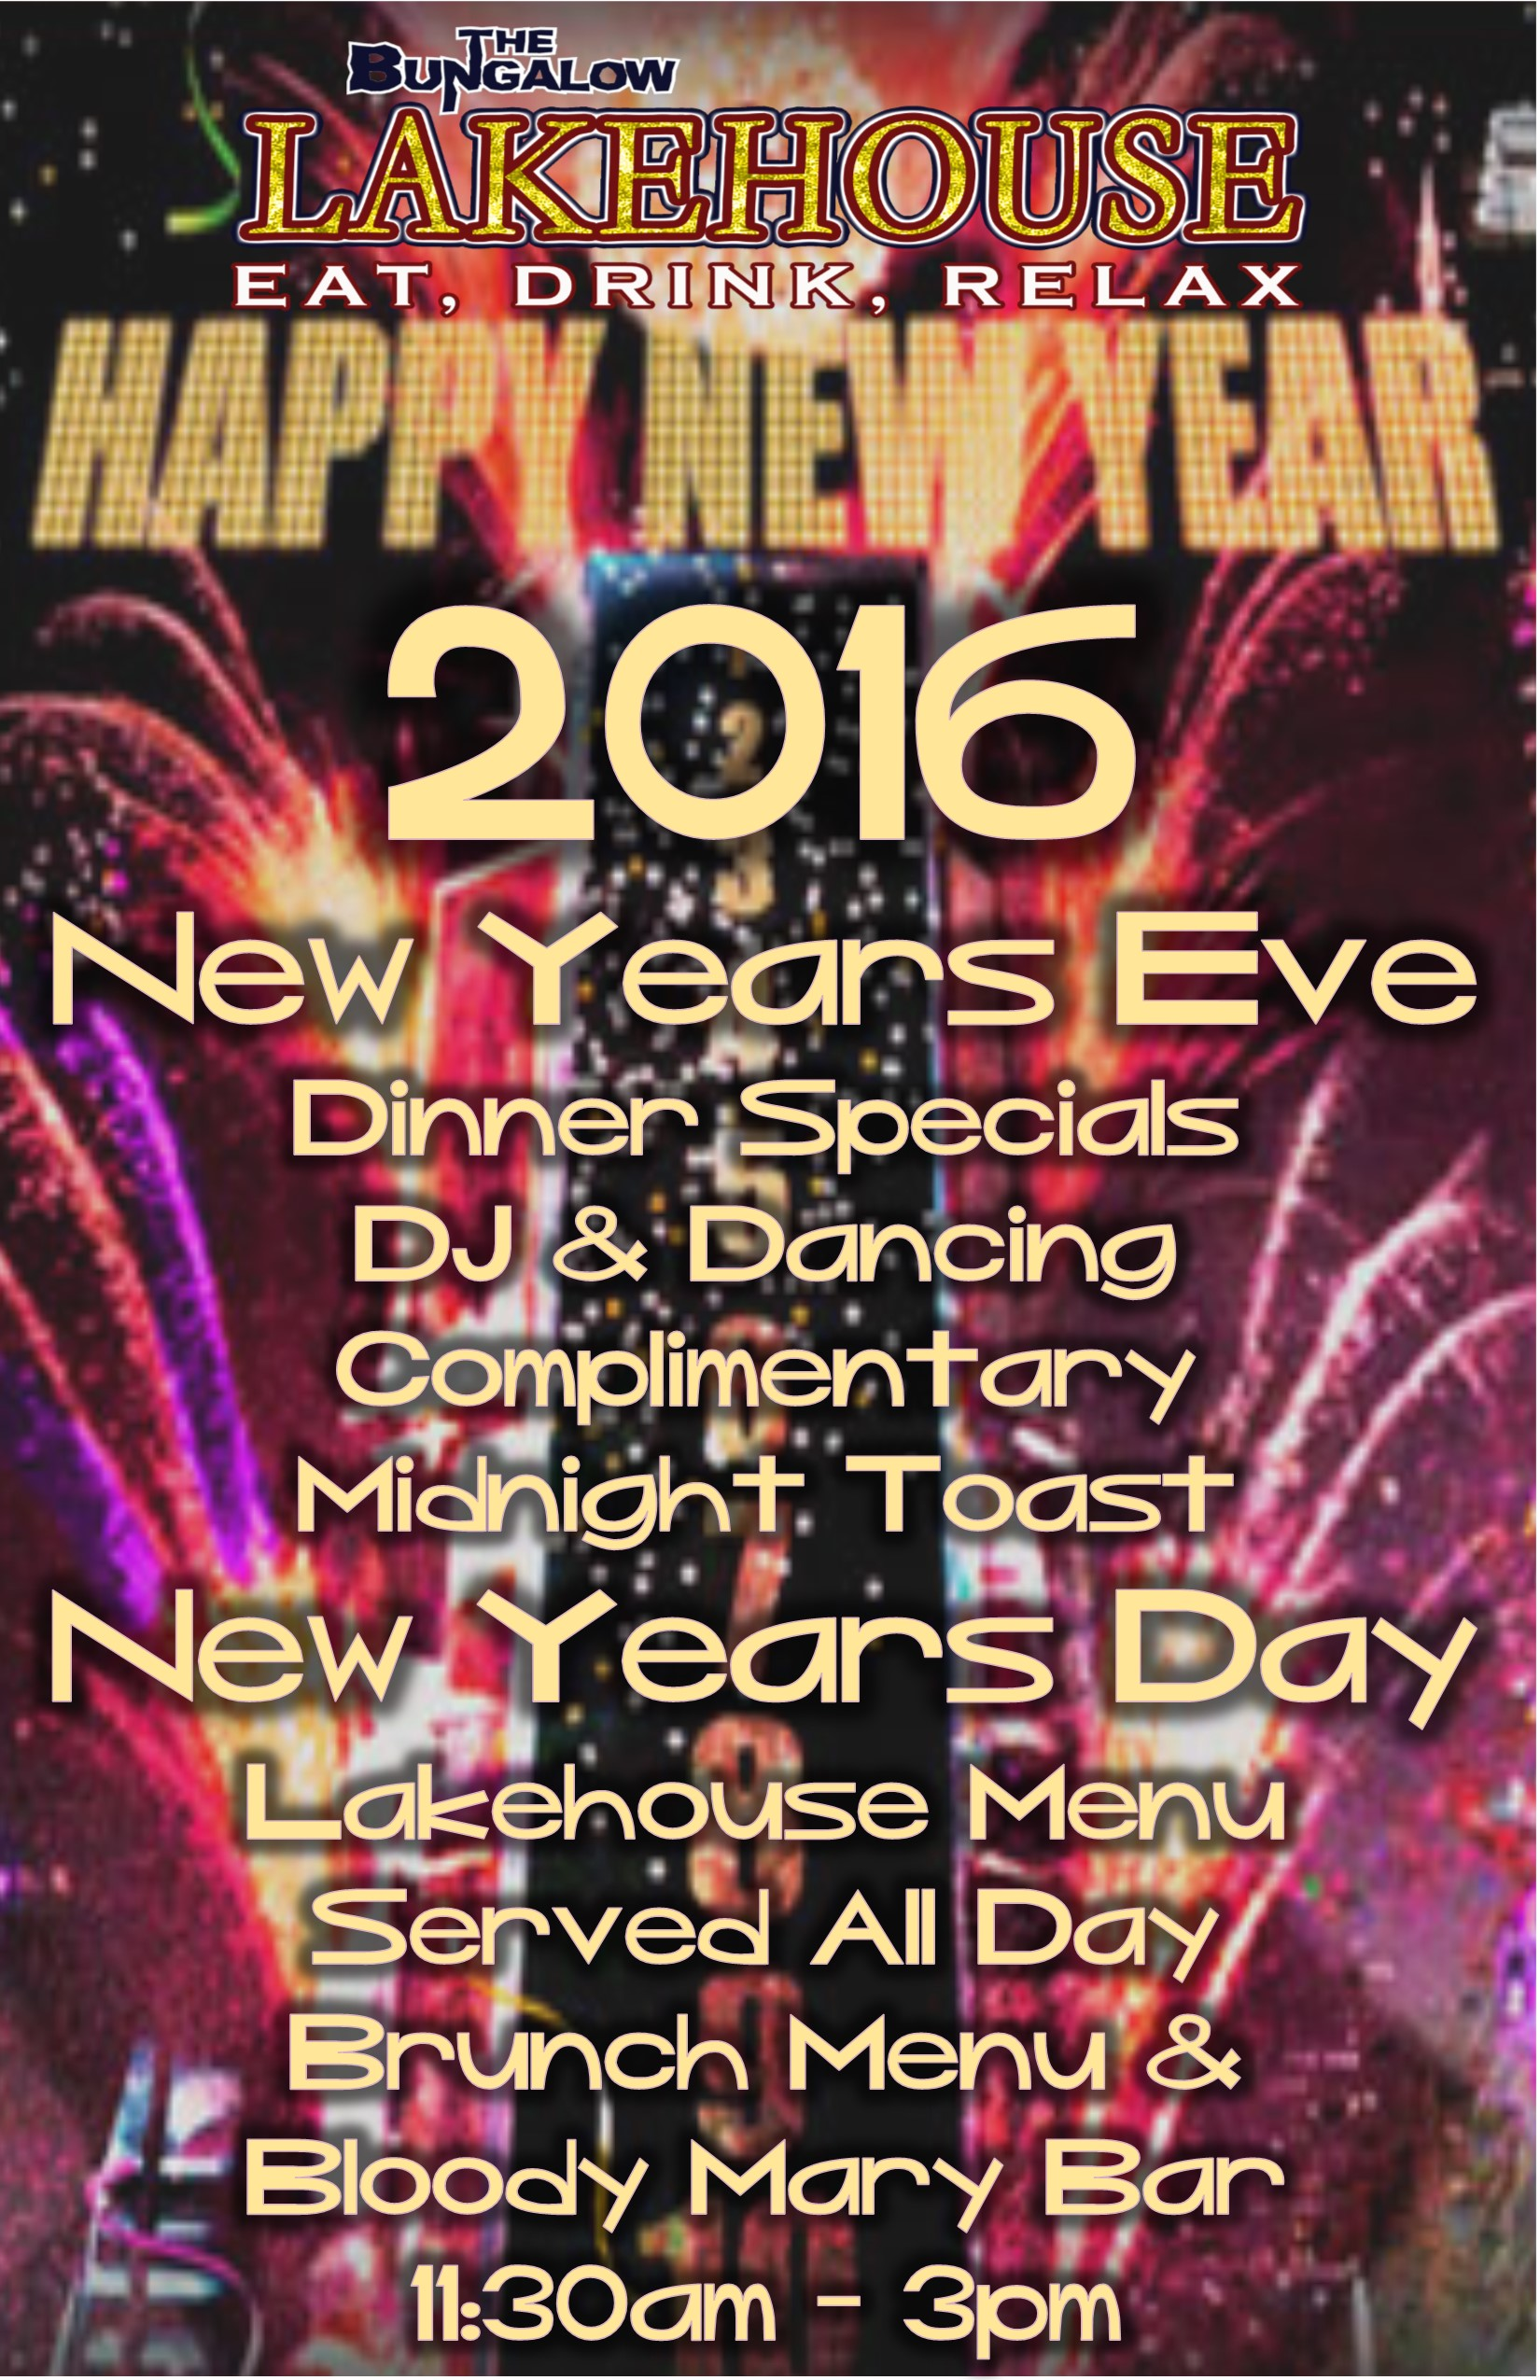 New years Eve Lakehouse 2015/2016